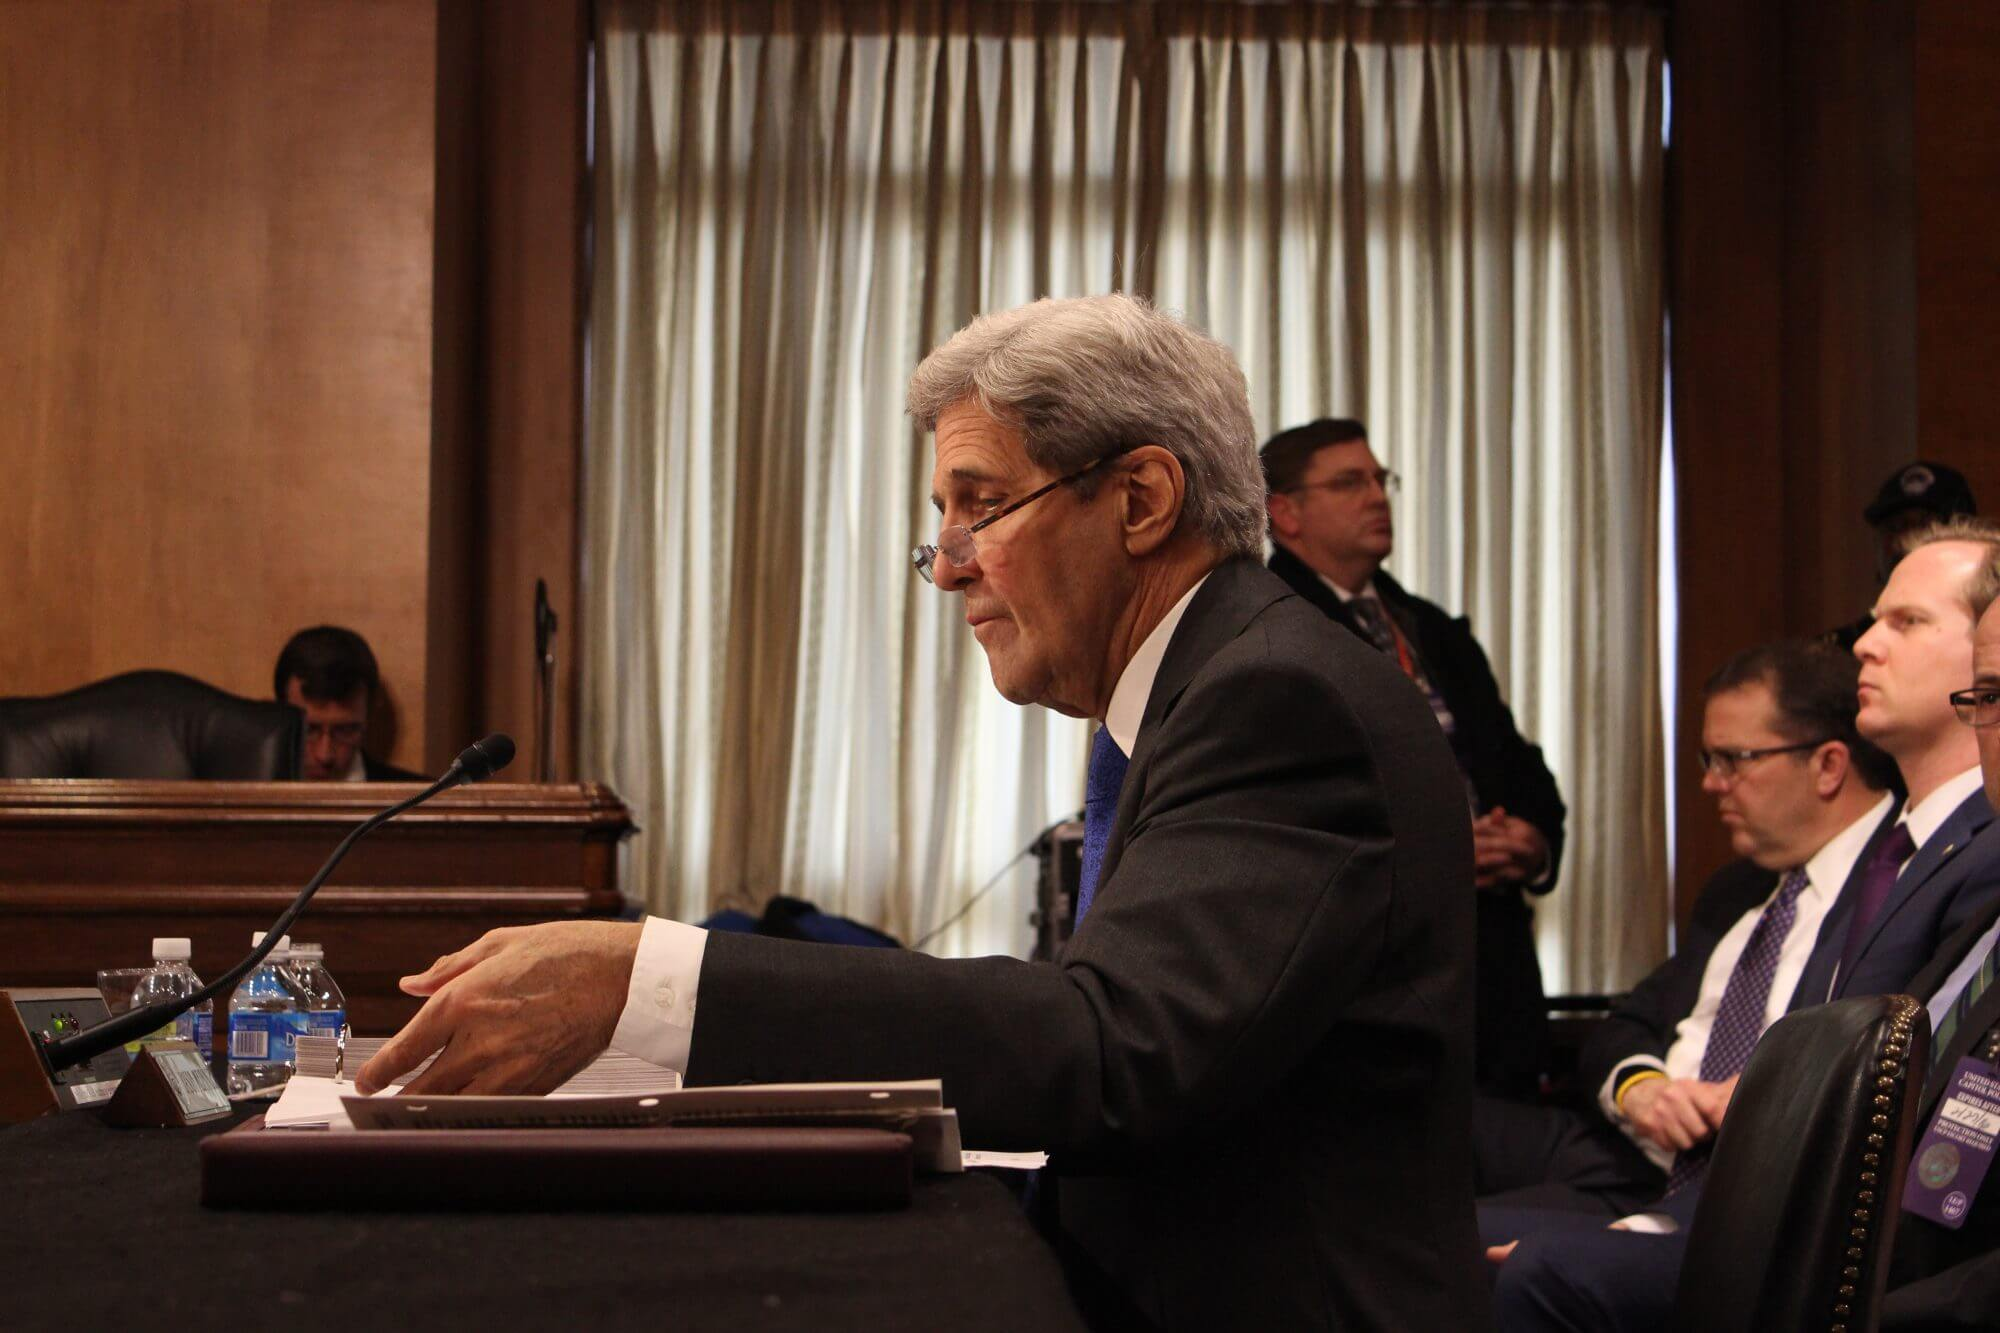 Kerry grilled on budget, foreign policy by GOP senators